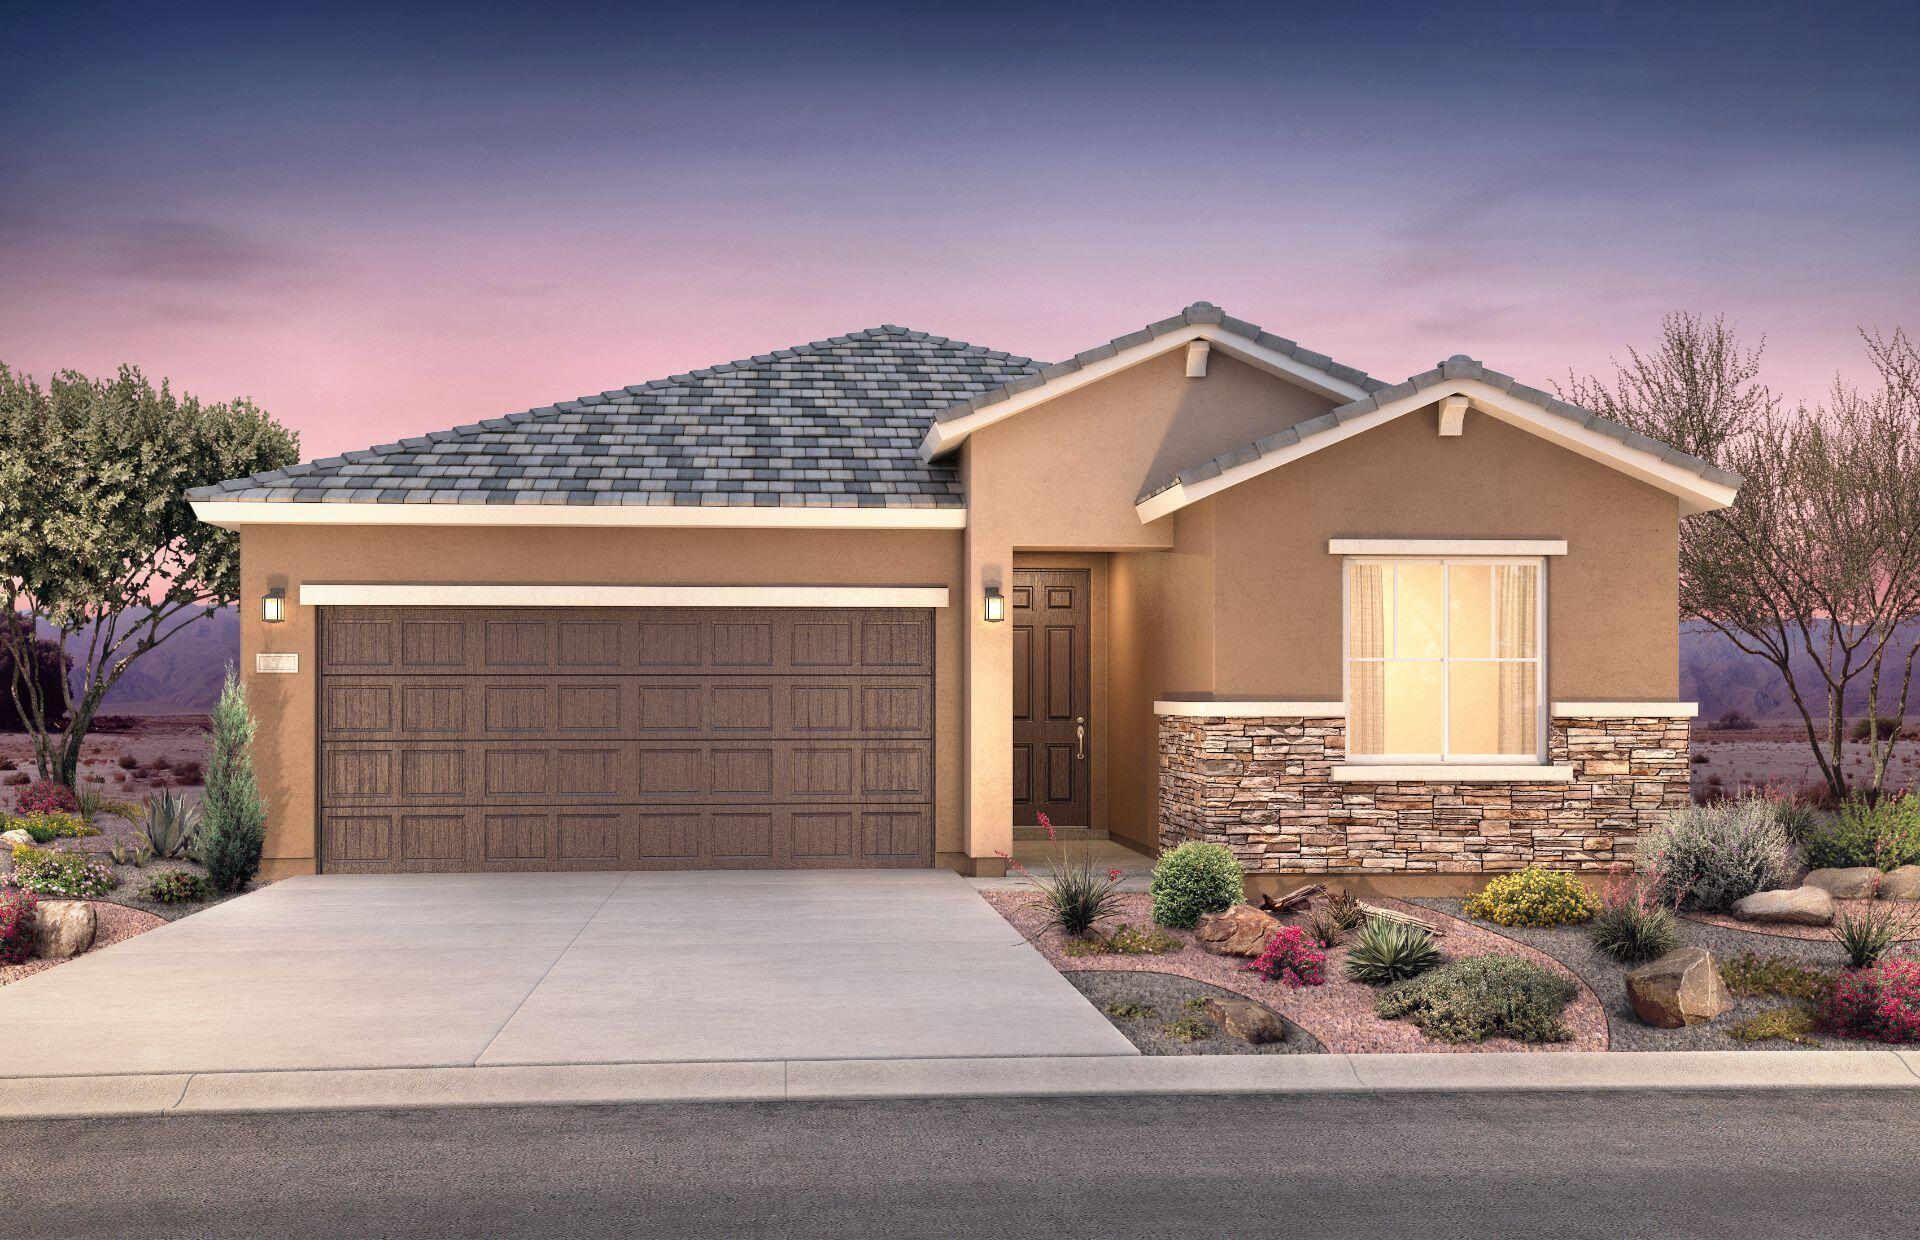 The Verbena floorplan here at Vallecito at Fiesta boasts ample features throughout and has multiple upgrade options for you to build the home of your dreams. Building a home with Pulte guarantees you a brand new, never lived-in home with features like brand new appliances, new carpet, new A/C, new tankless hot water heater, and so much more! Come see this proposed construction home being built in the Fiesta masterplan community in Los Lunas!